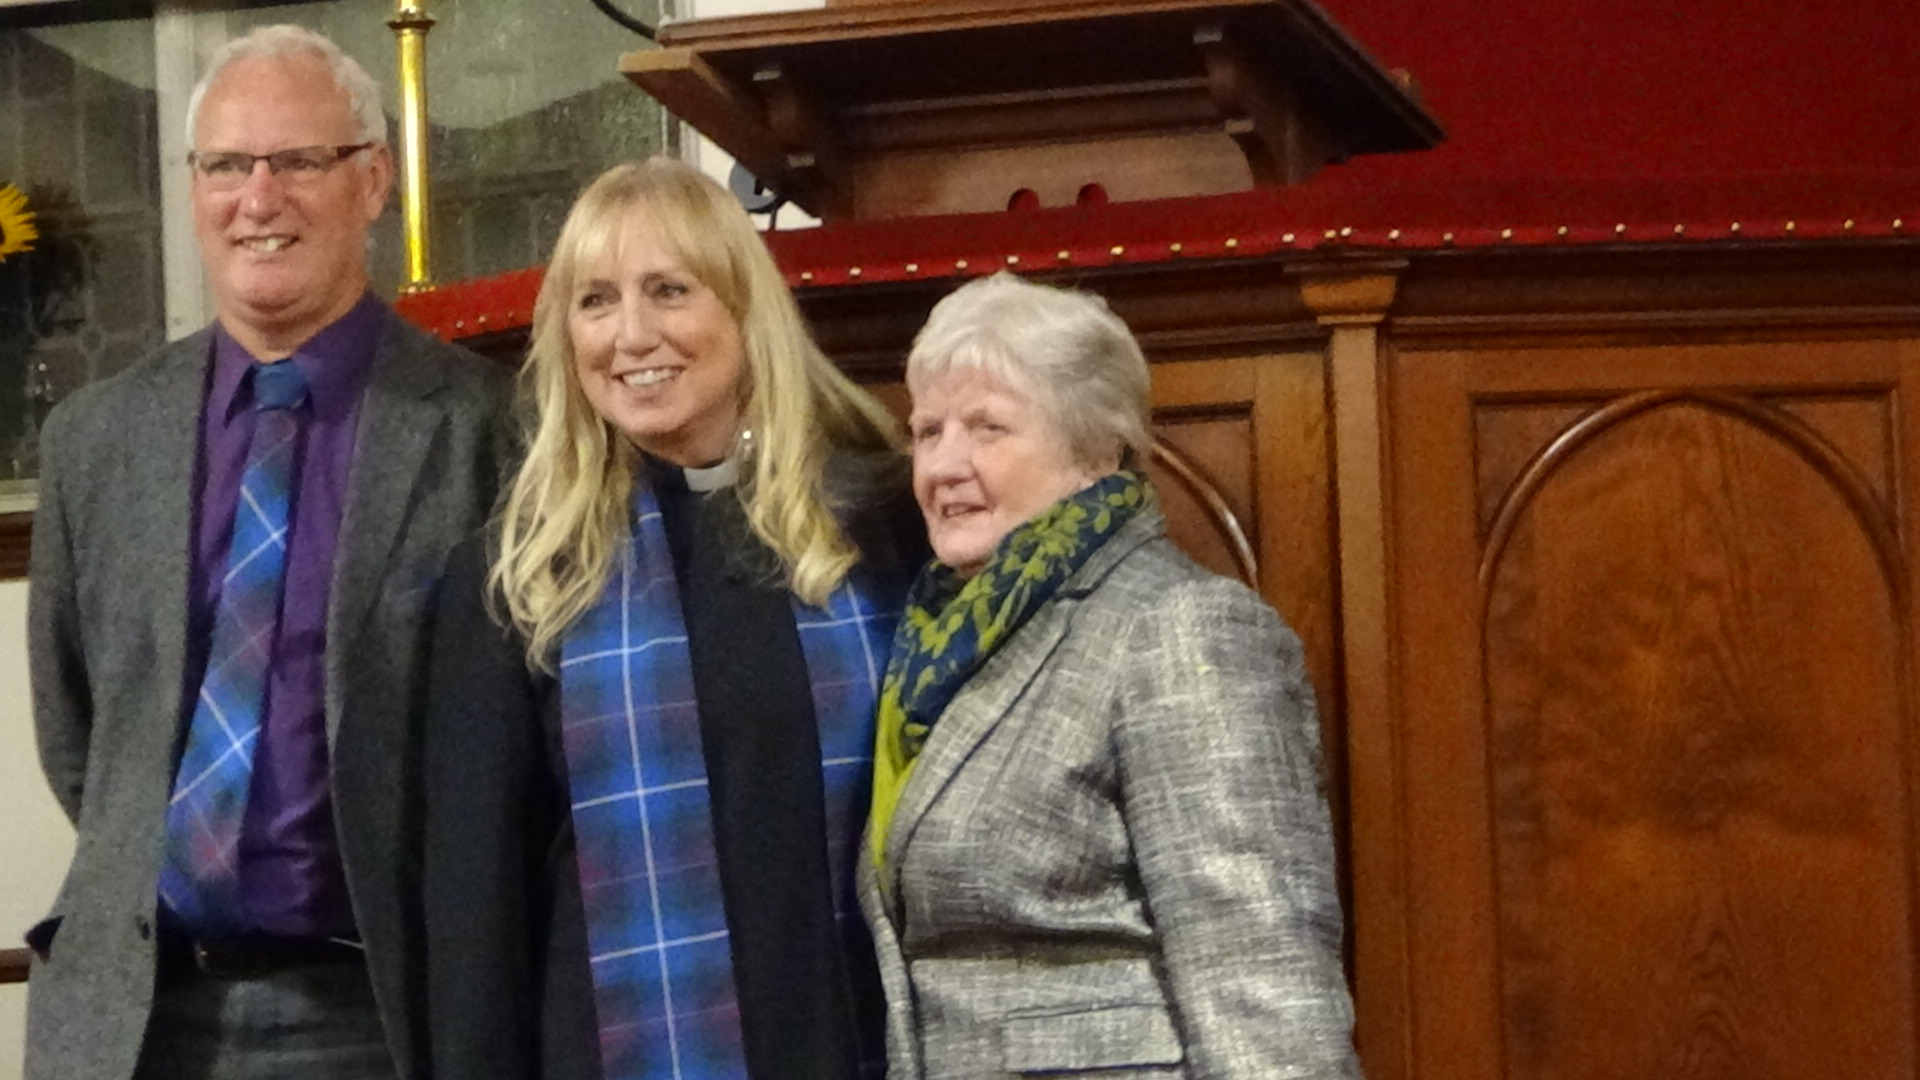 Clyne l/w Kildonan, Loth Helmsdale welcome our new Minister, Rev. Lorna Tunstall pictured here with her husband Mark and her Mum, Helen.